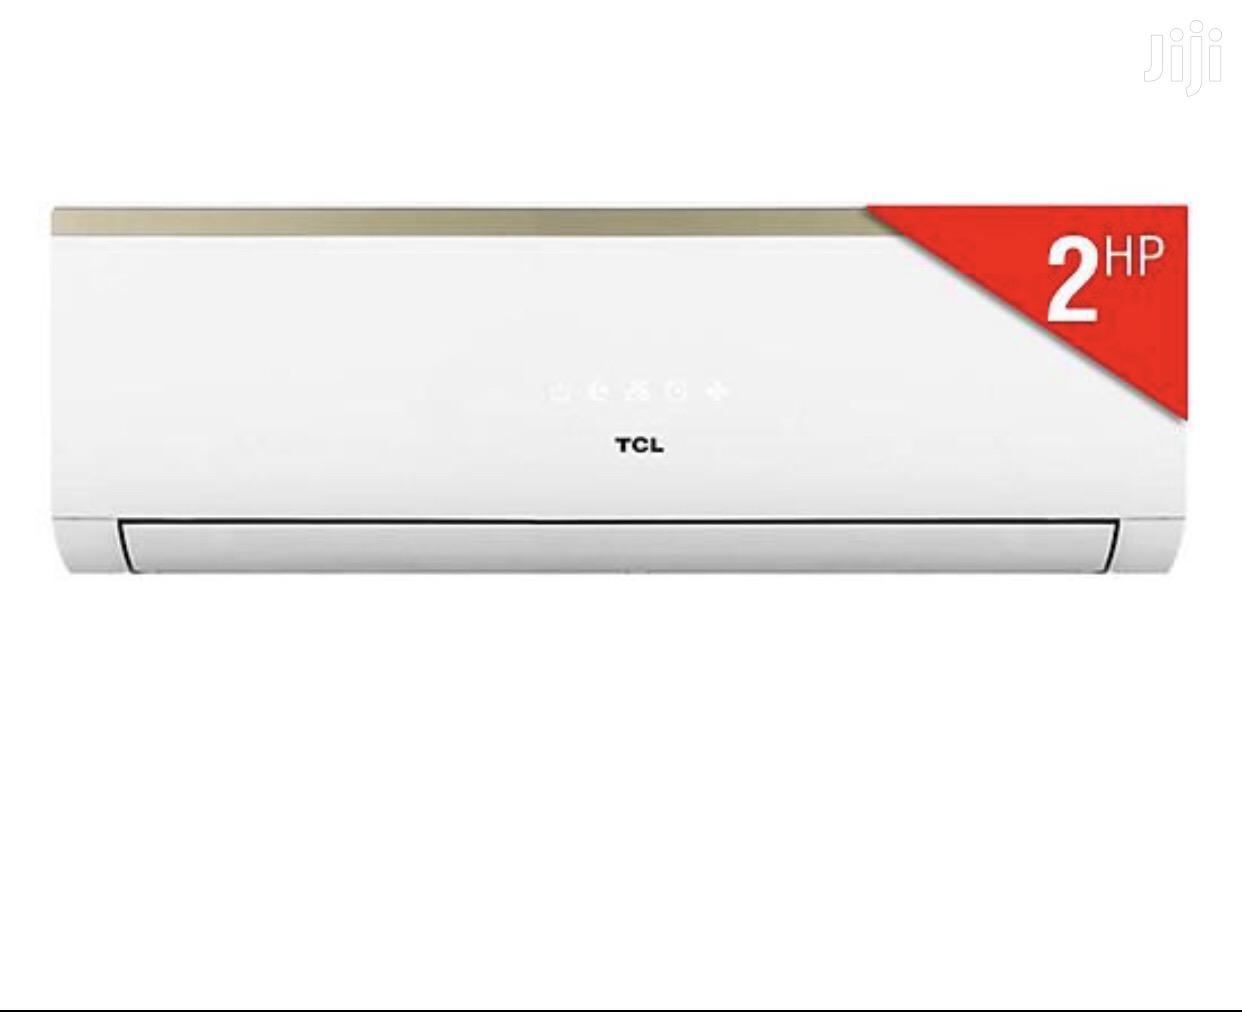 New TCL 2.0 HP Split Air Conditioner Quality